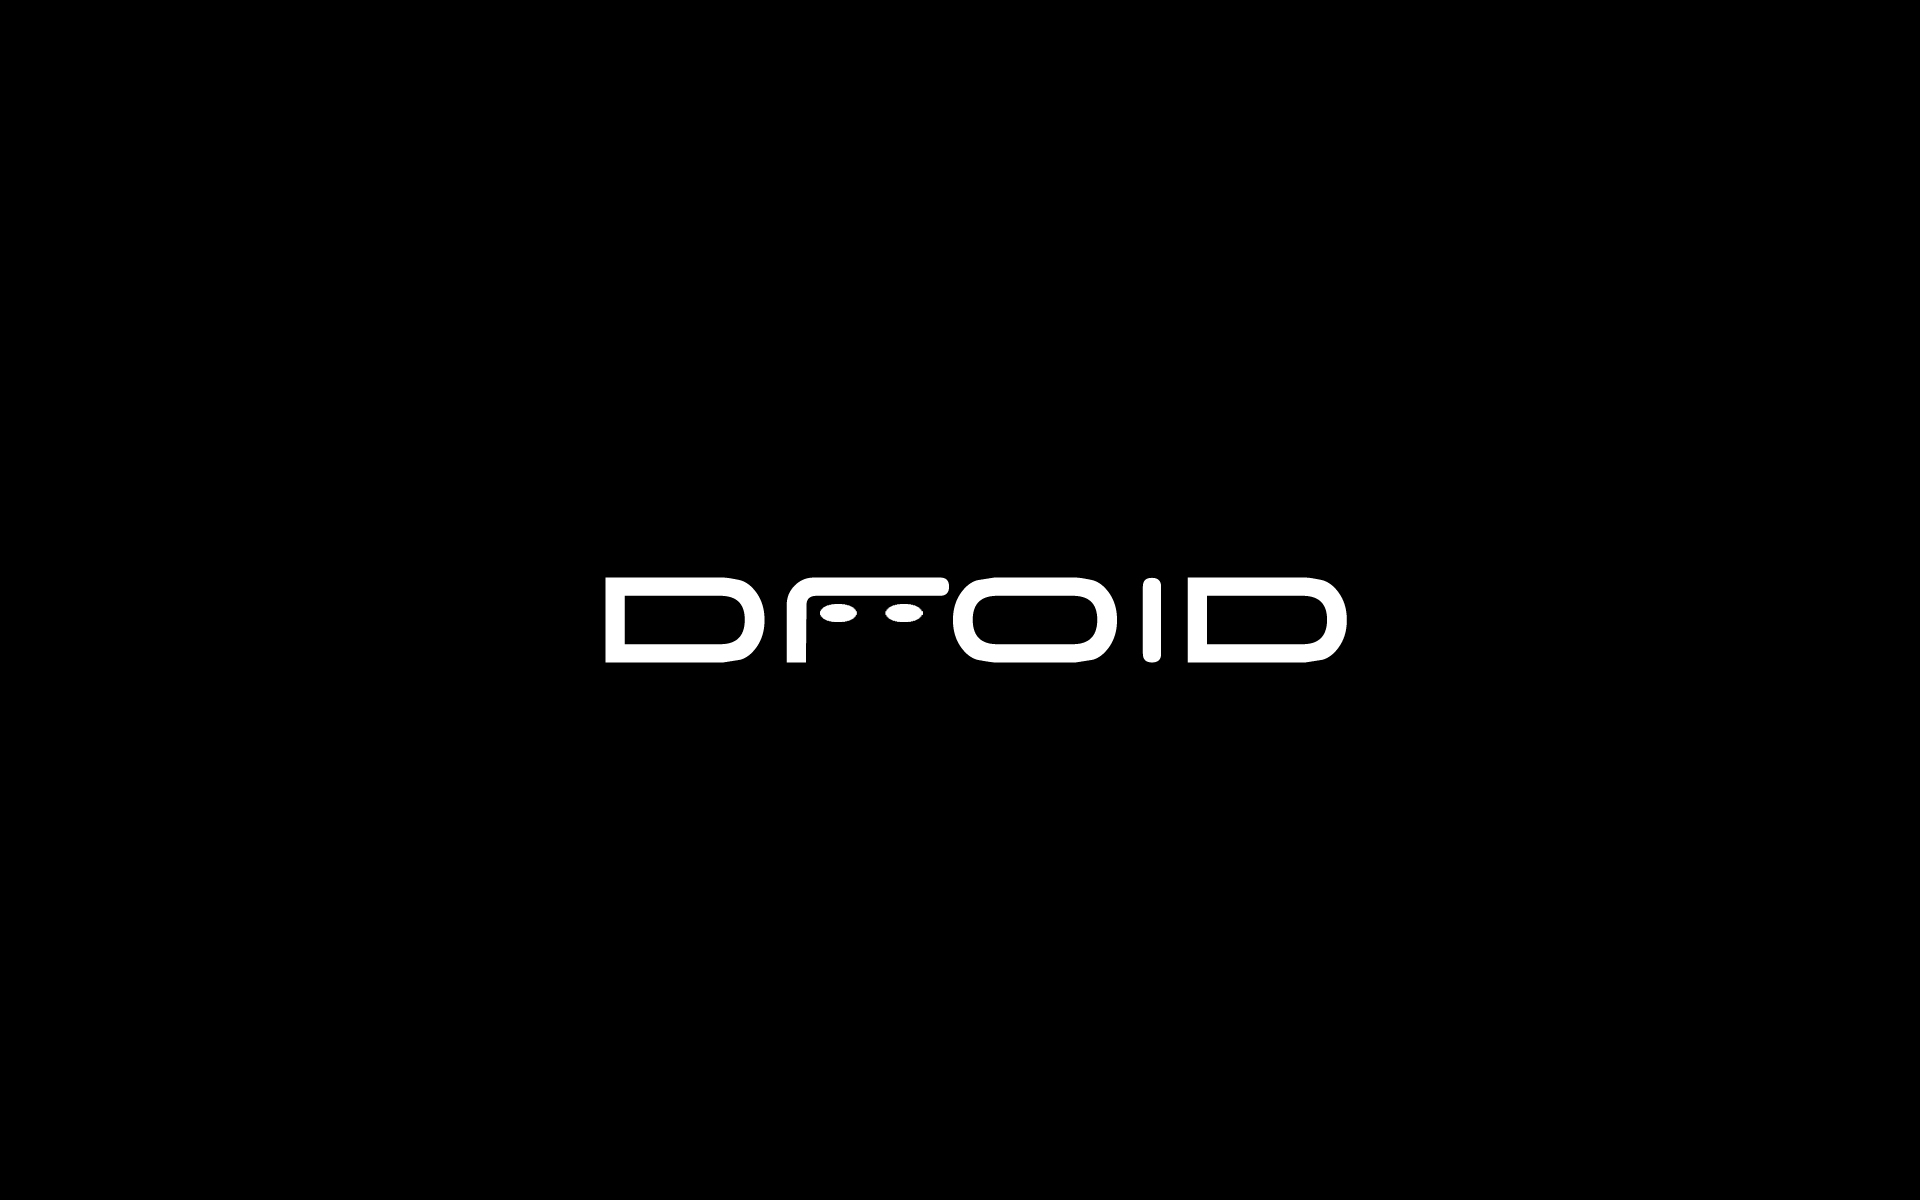 droid logo wallpaper 43635